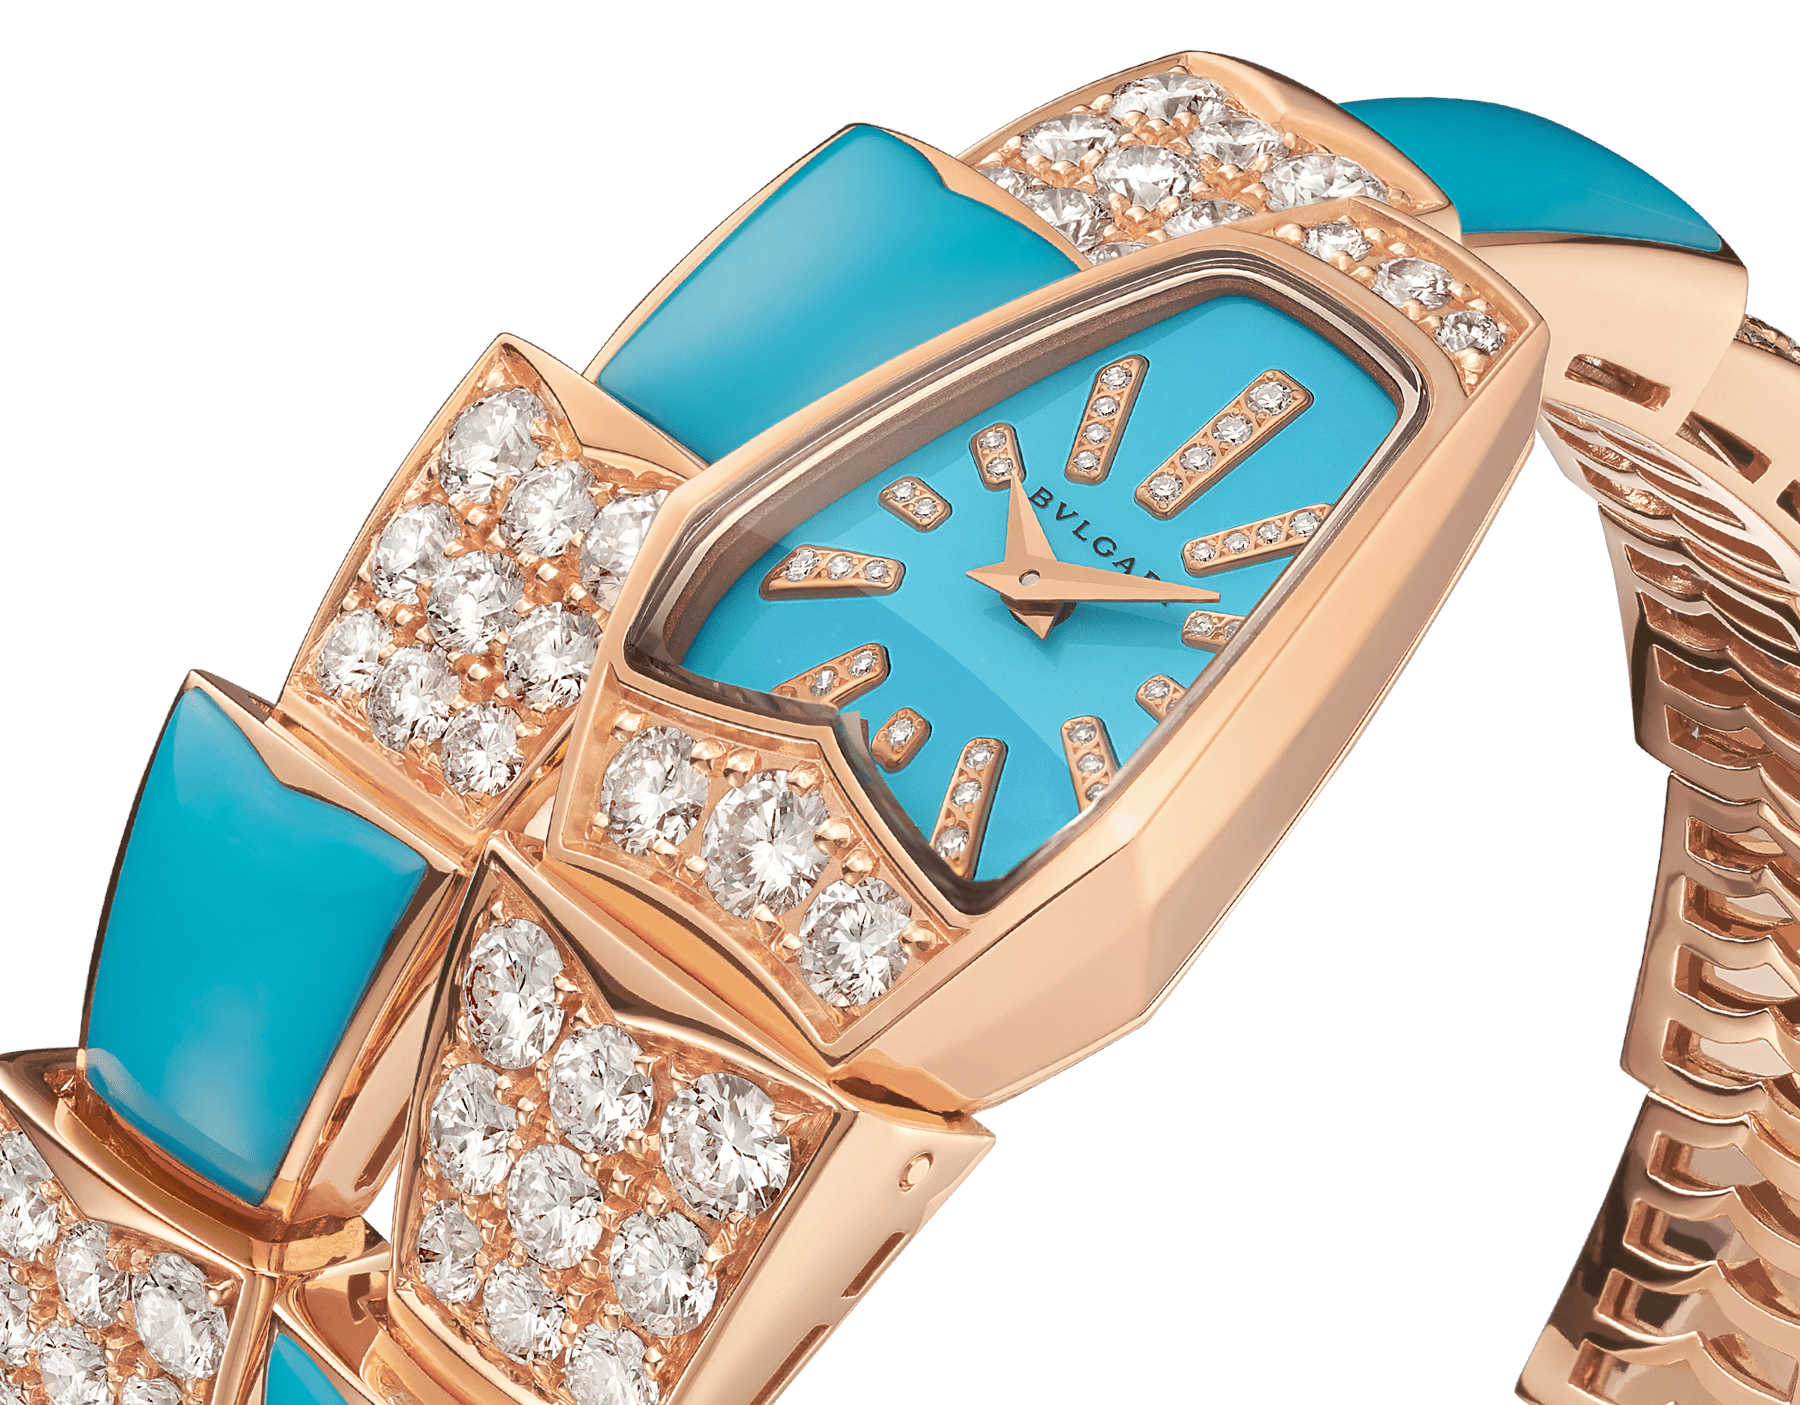 Serpenti Jewellery Watch with 18 kt rose gold case set with brilliant cut diamonds, turquoise lacquered dial, diamond indexes, 18 kt rose gold single spiral bracelet set with brilliant cut diamonds and turquoise elements. 102786 image 2